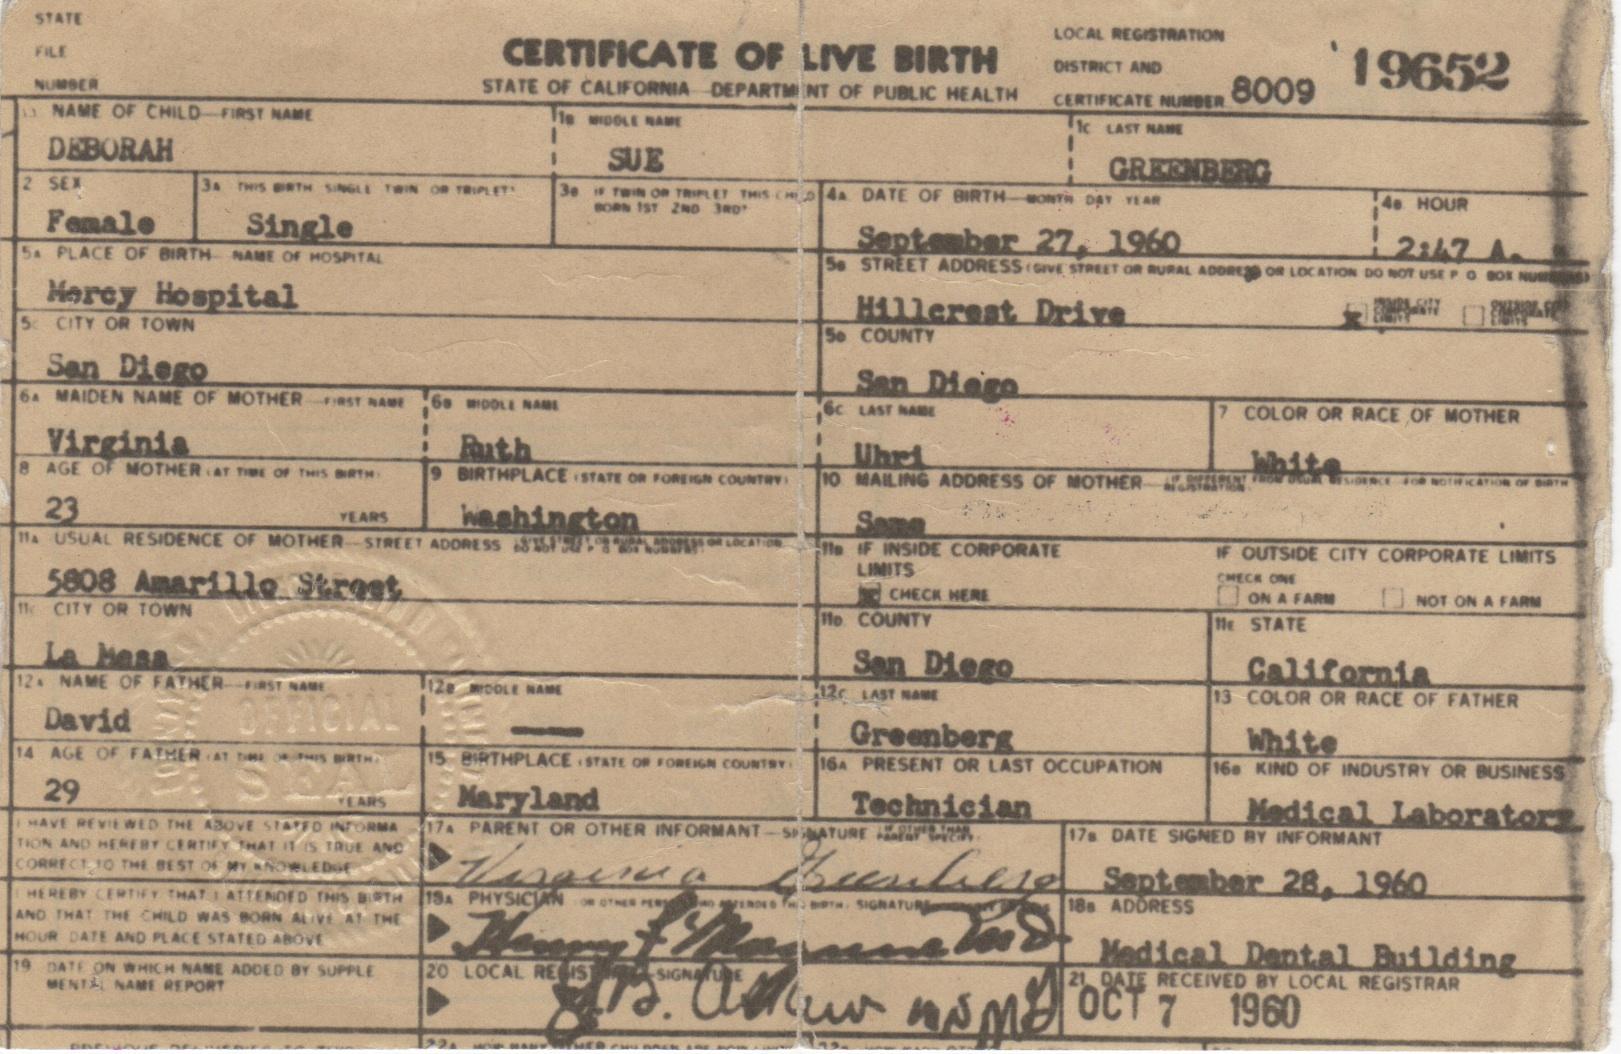 Birth certificate california department of health image debi birth certificate debi derryberry comments yadclub image collections aiddatafo Gallery